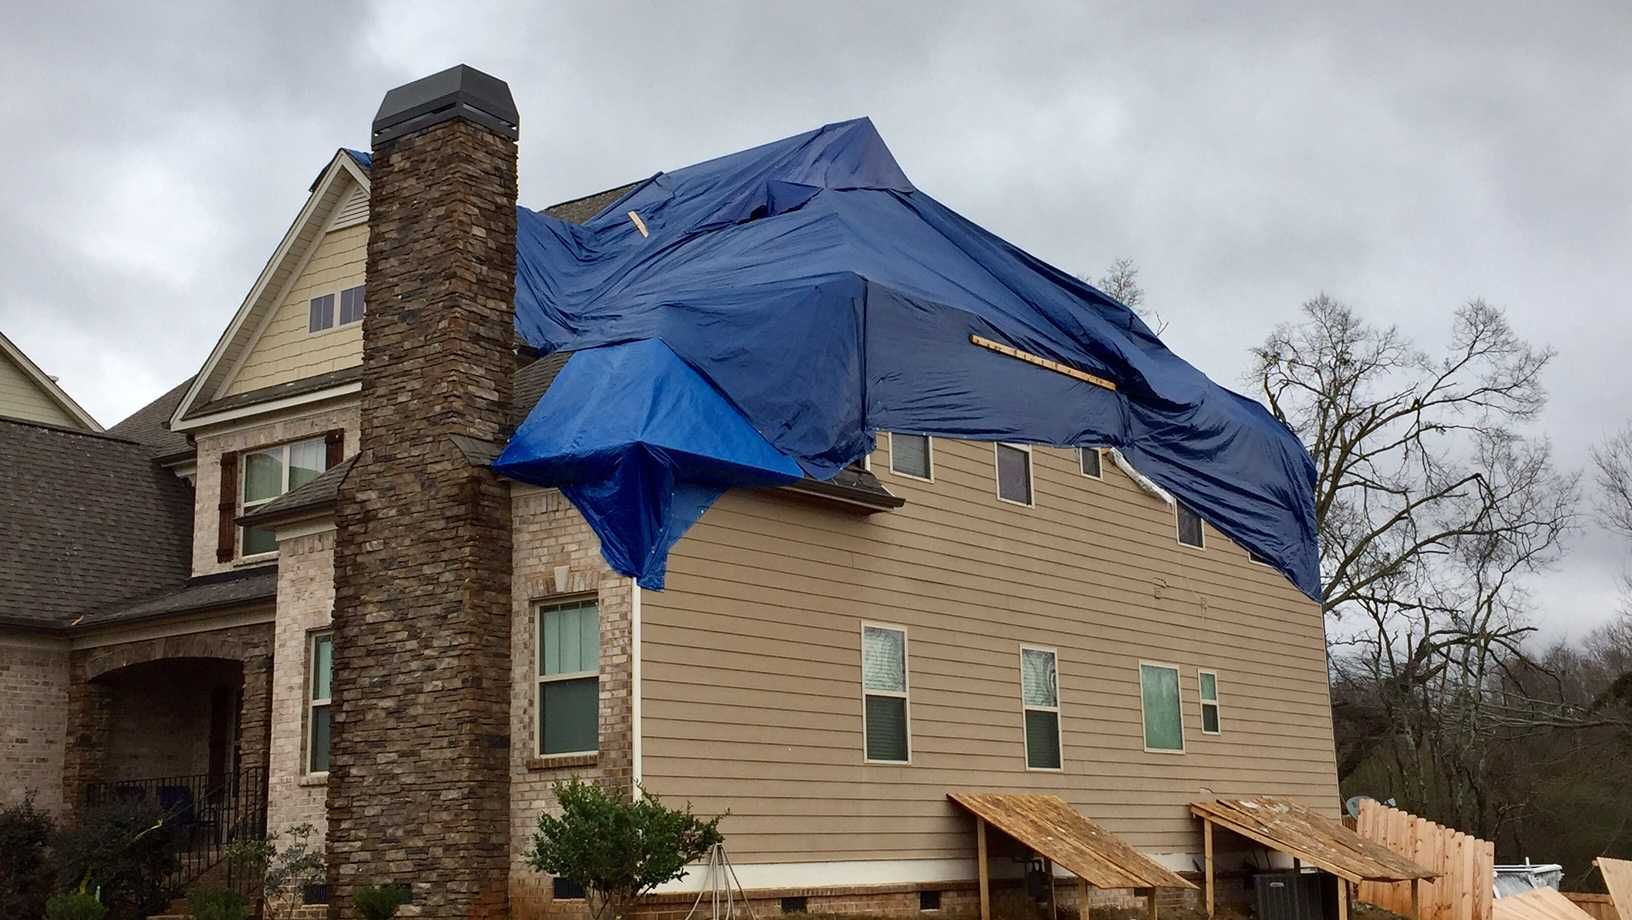 Tornado clean up continues in Simpsonville